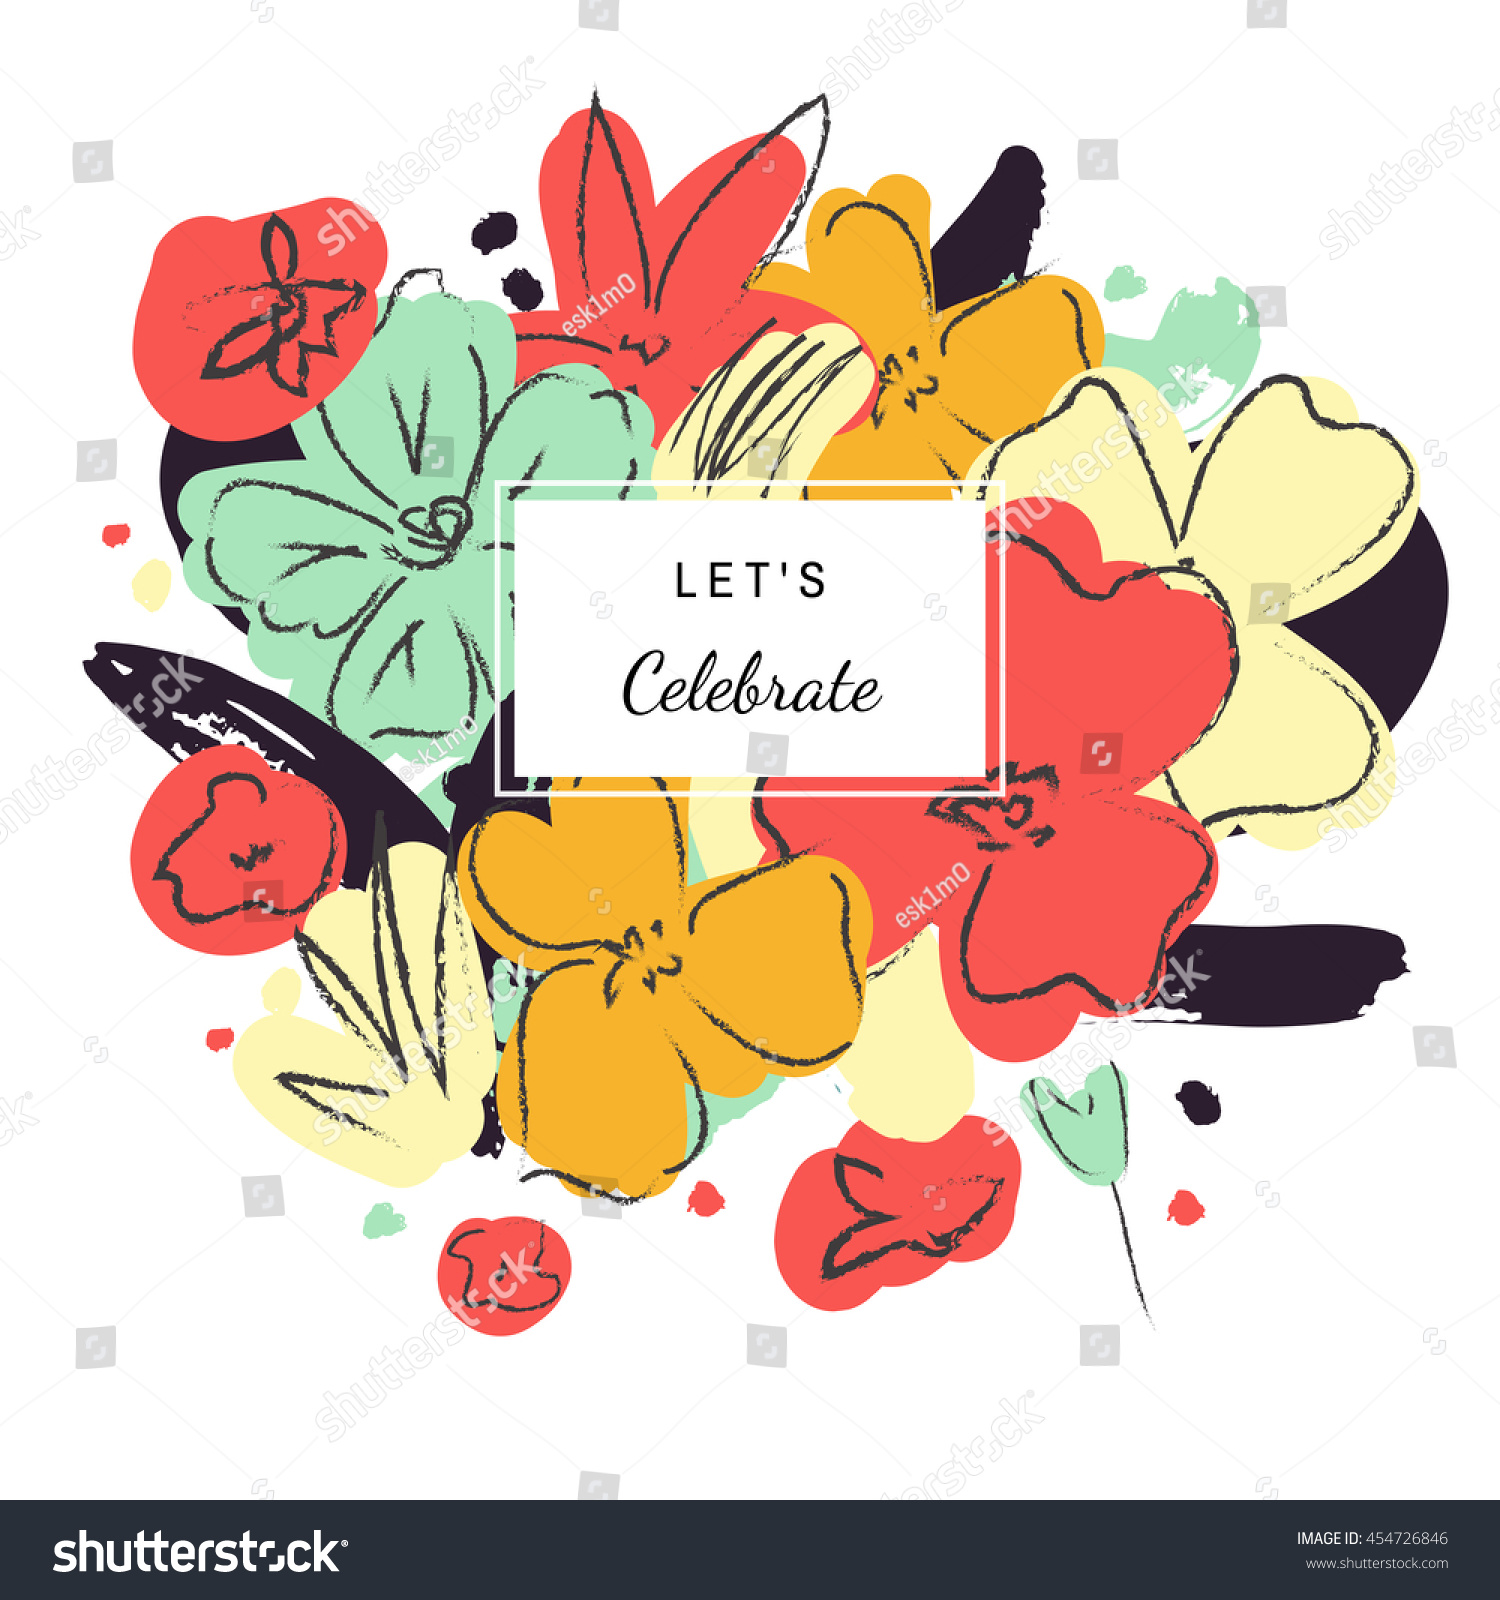 Happy birthday abstract floral card hand stock illustration happy birthday abstract floral card hand drawn flowers for wedding anniversary birthday izmirmasajfo Image collections